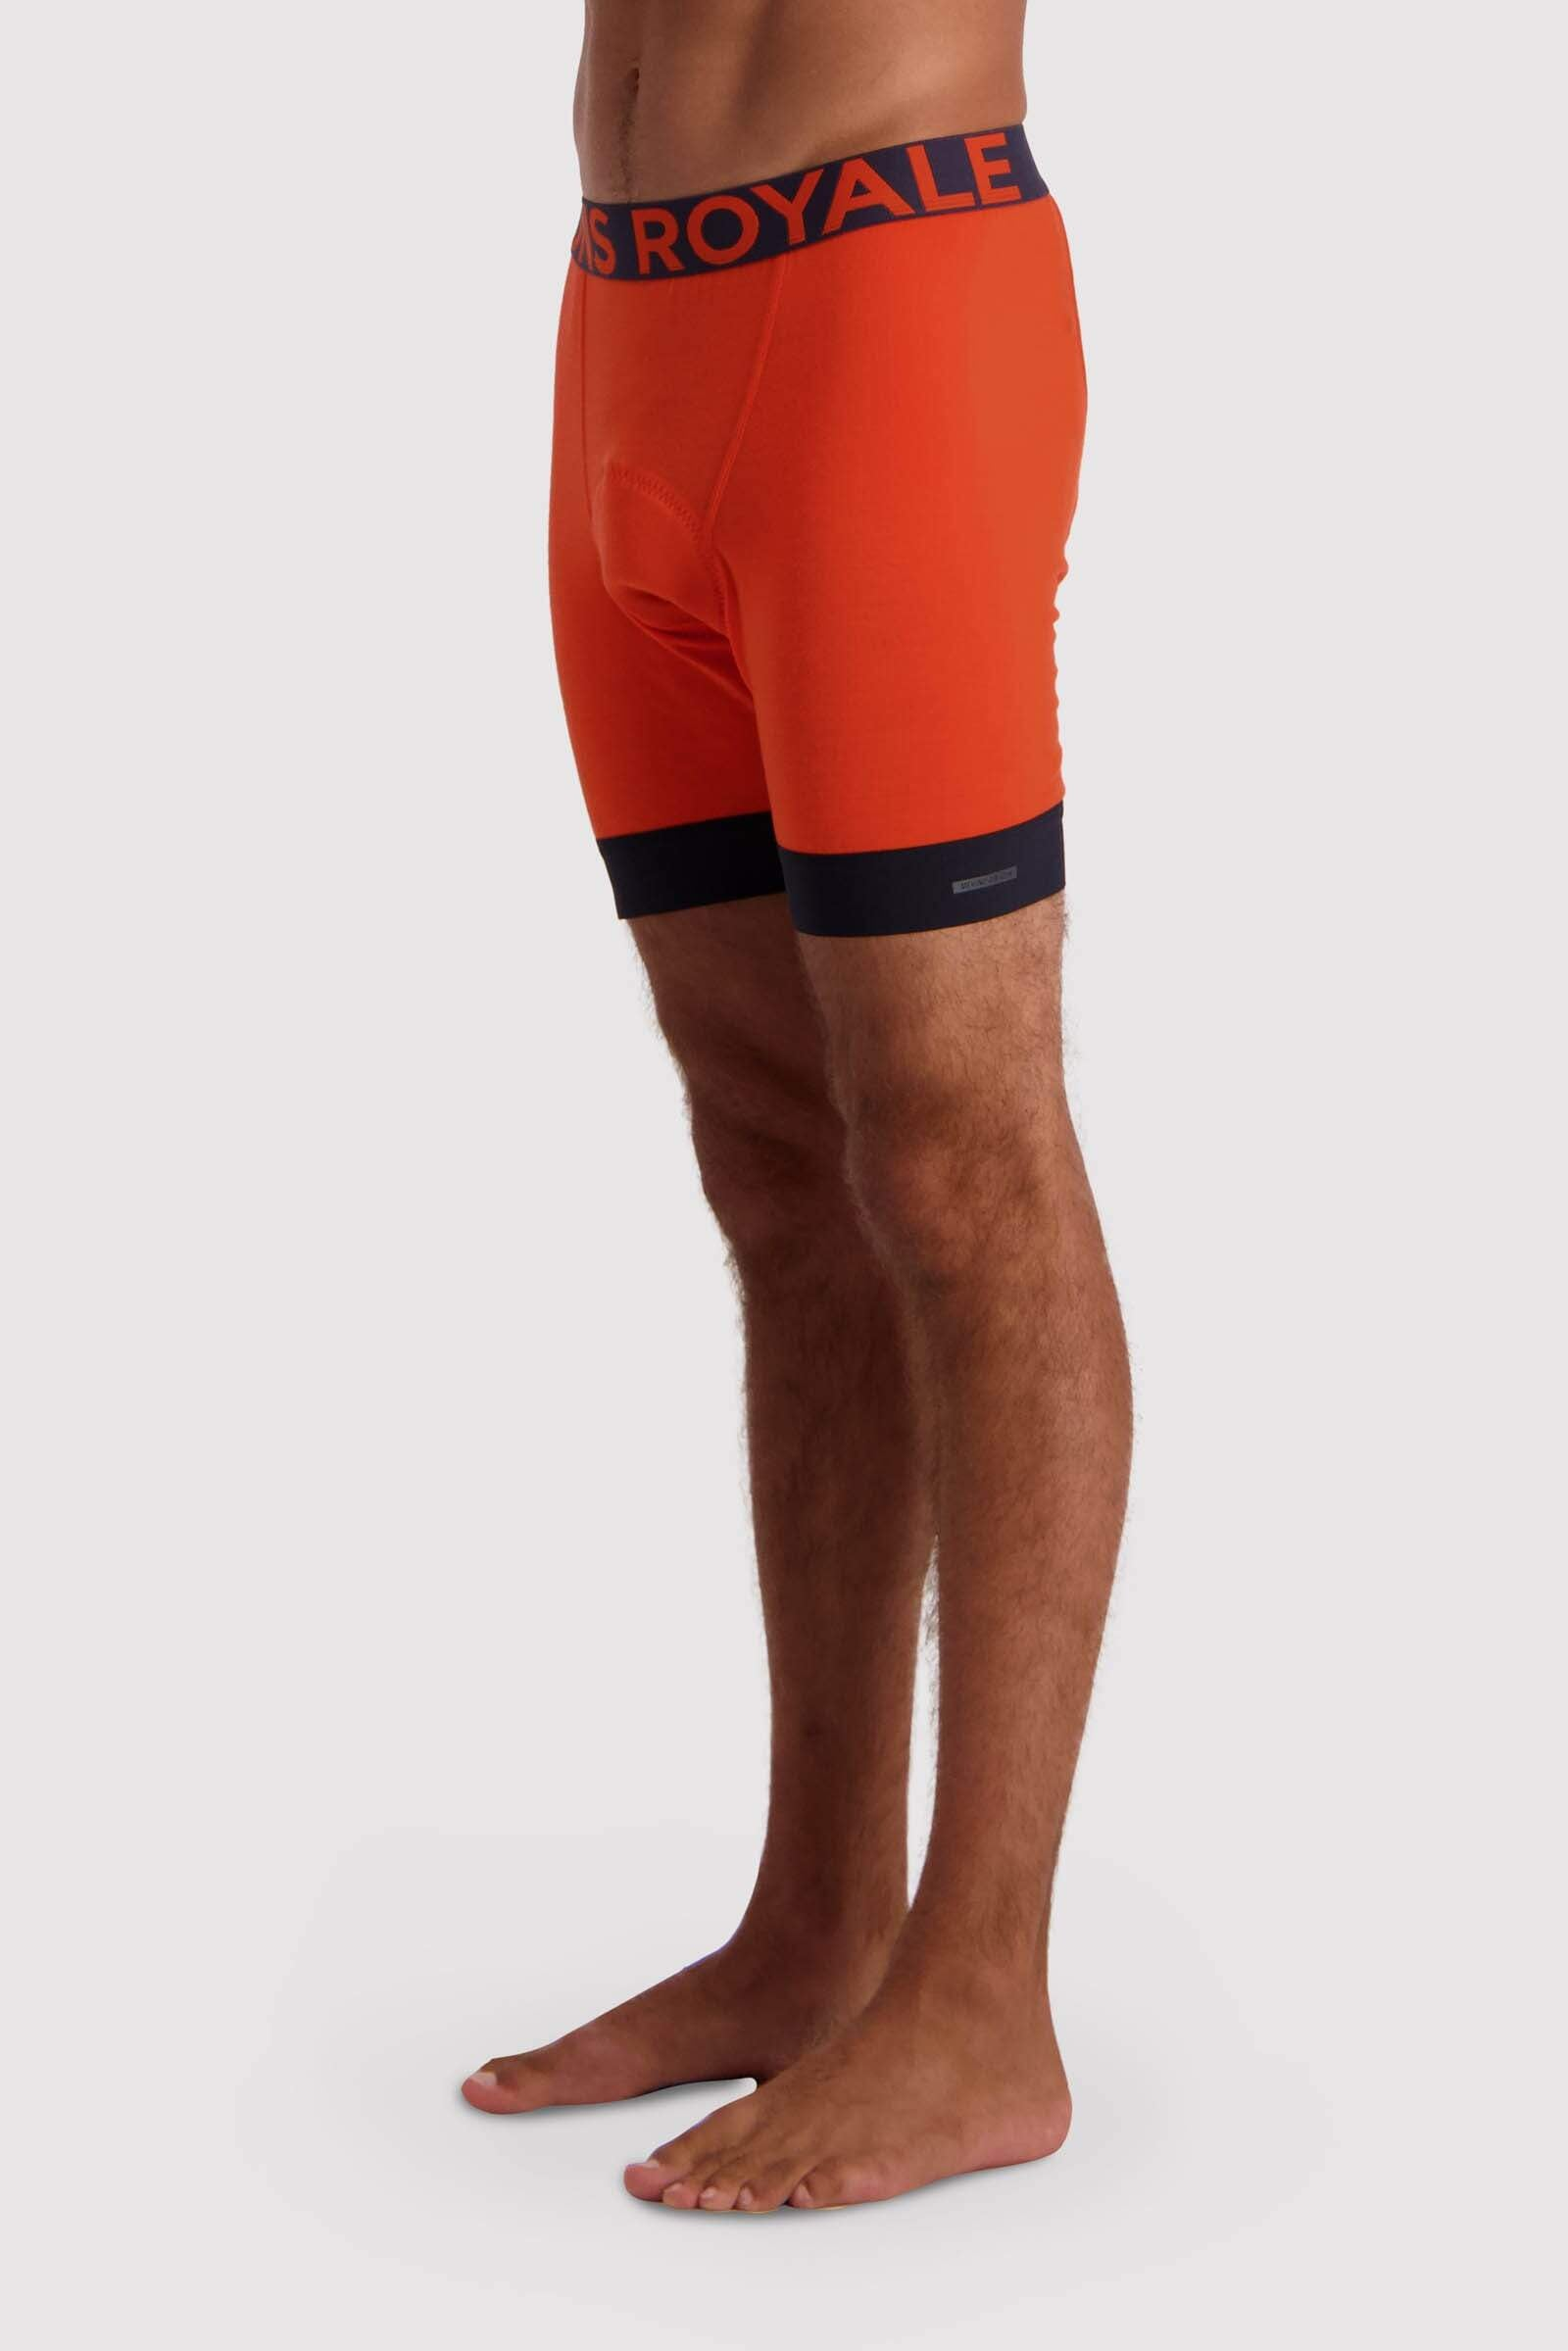 Enduro Bike Short Liner - Orange Smash